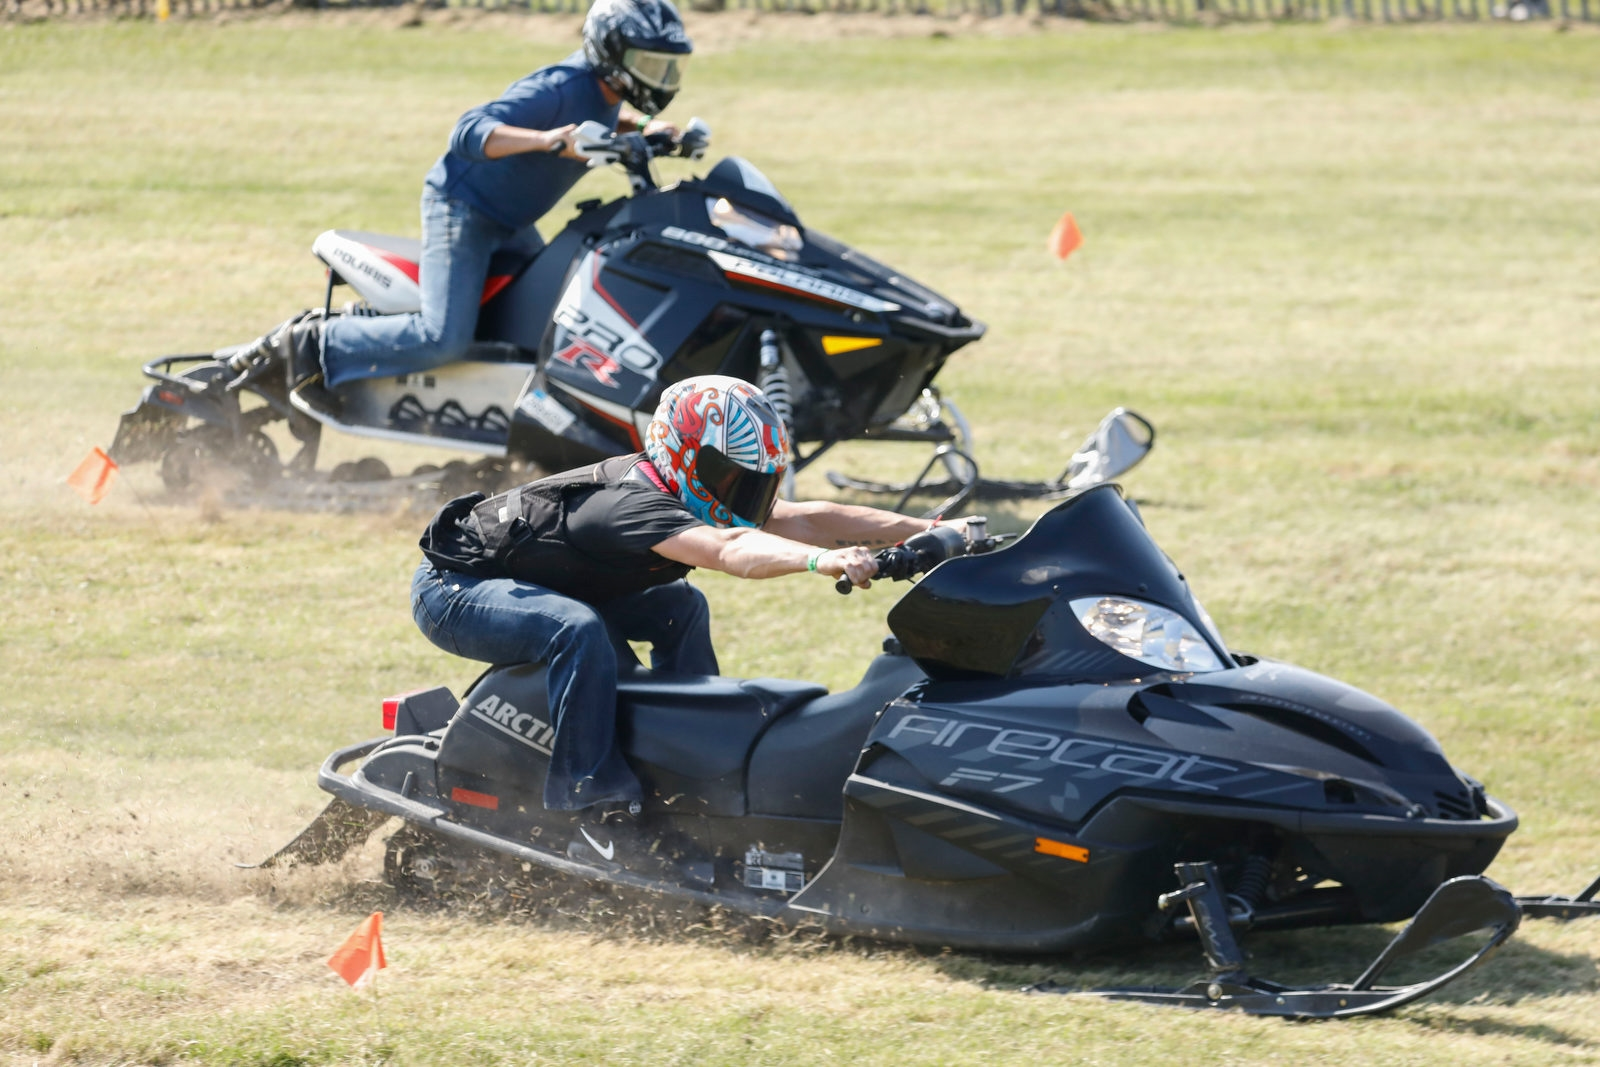 90-degree weather turned out to be just fine for the Shawnee Sno-Chiefs Snowmobile Club's annual Grass Drags, as Paul Spry of Penfield, right, has a jump on his competition.  While snow wasn't ever expected, this was the warmest weather they've ever had for the event.